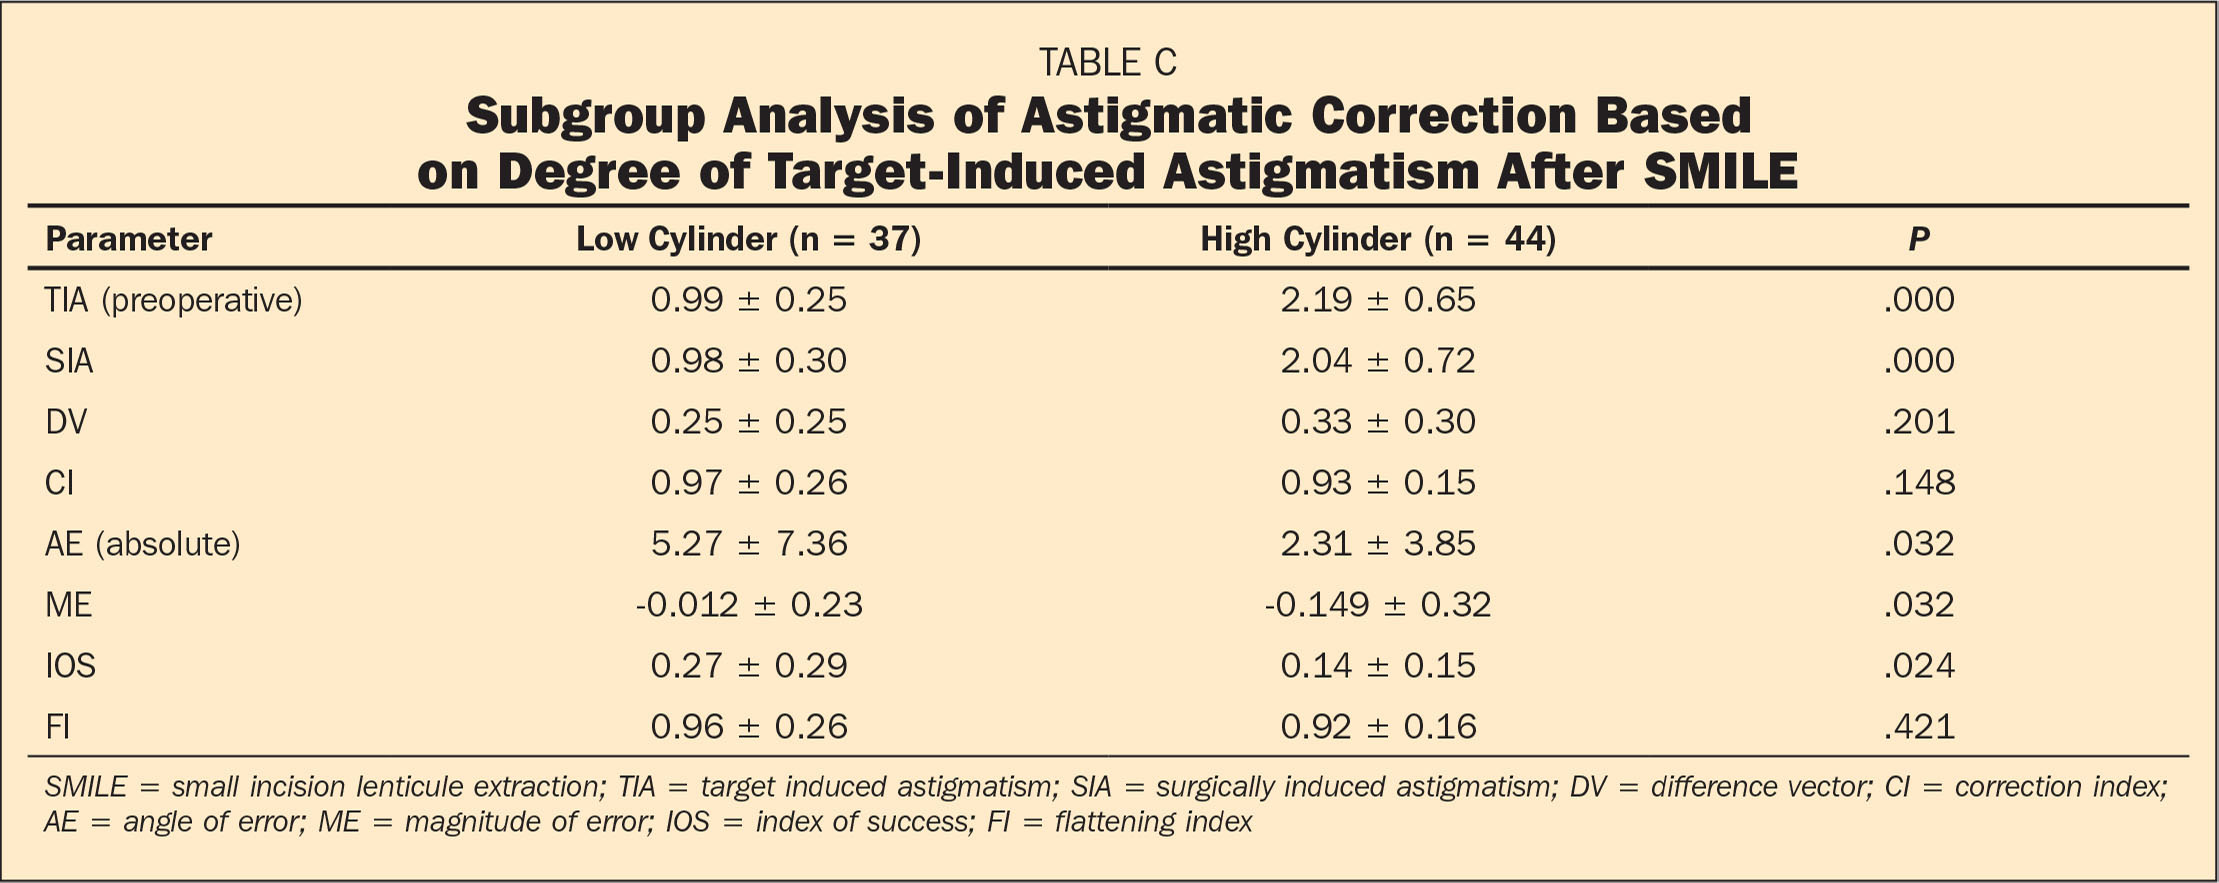 Subgroup Analysis of Astigmatic Correction Based on Degree of Target-Induced Astigmatism After SMILE